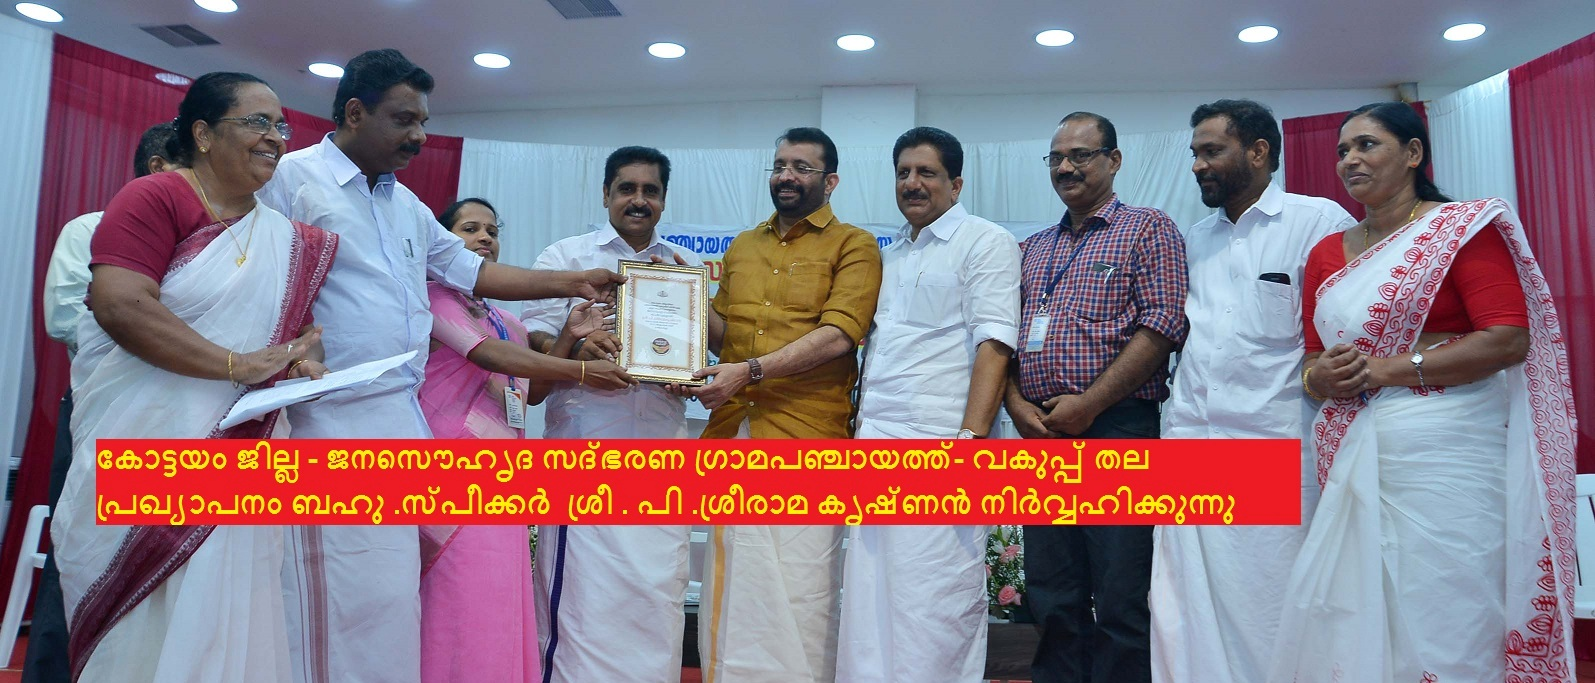 Kottayam district Citizen friendly- good governance Grama Panchayat declaration function photos